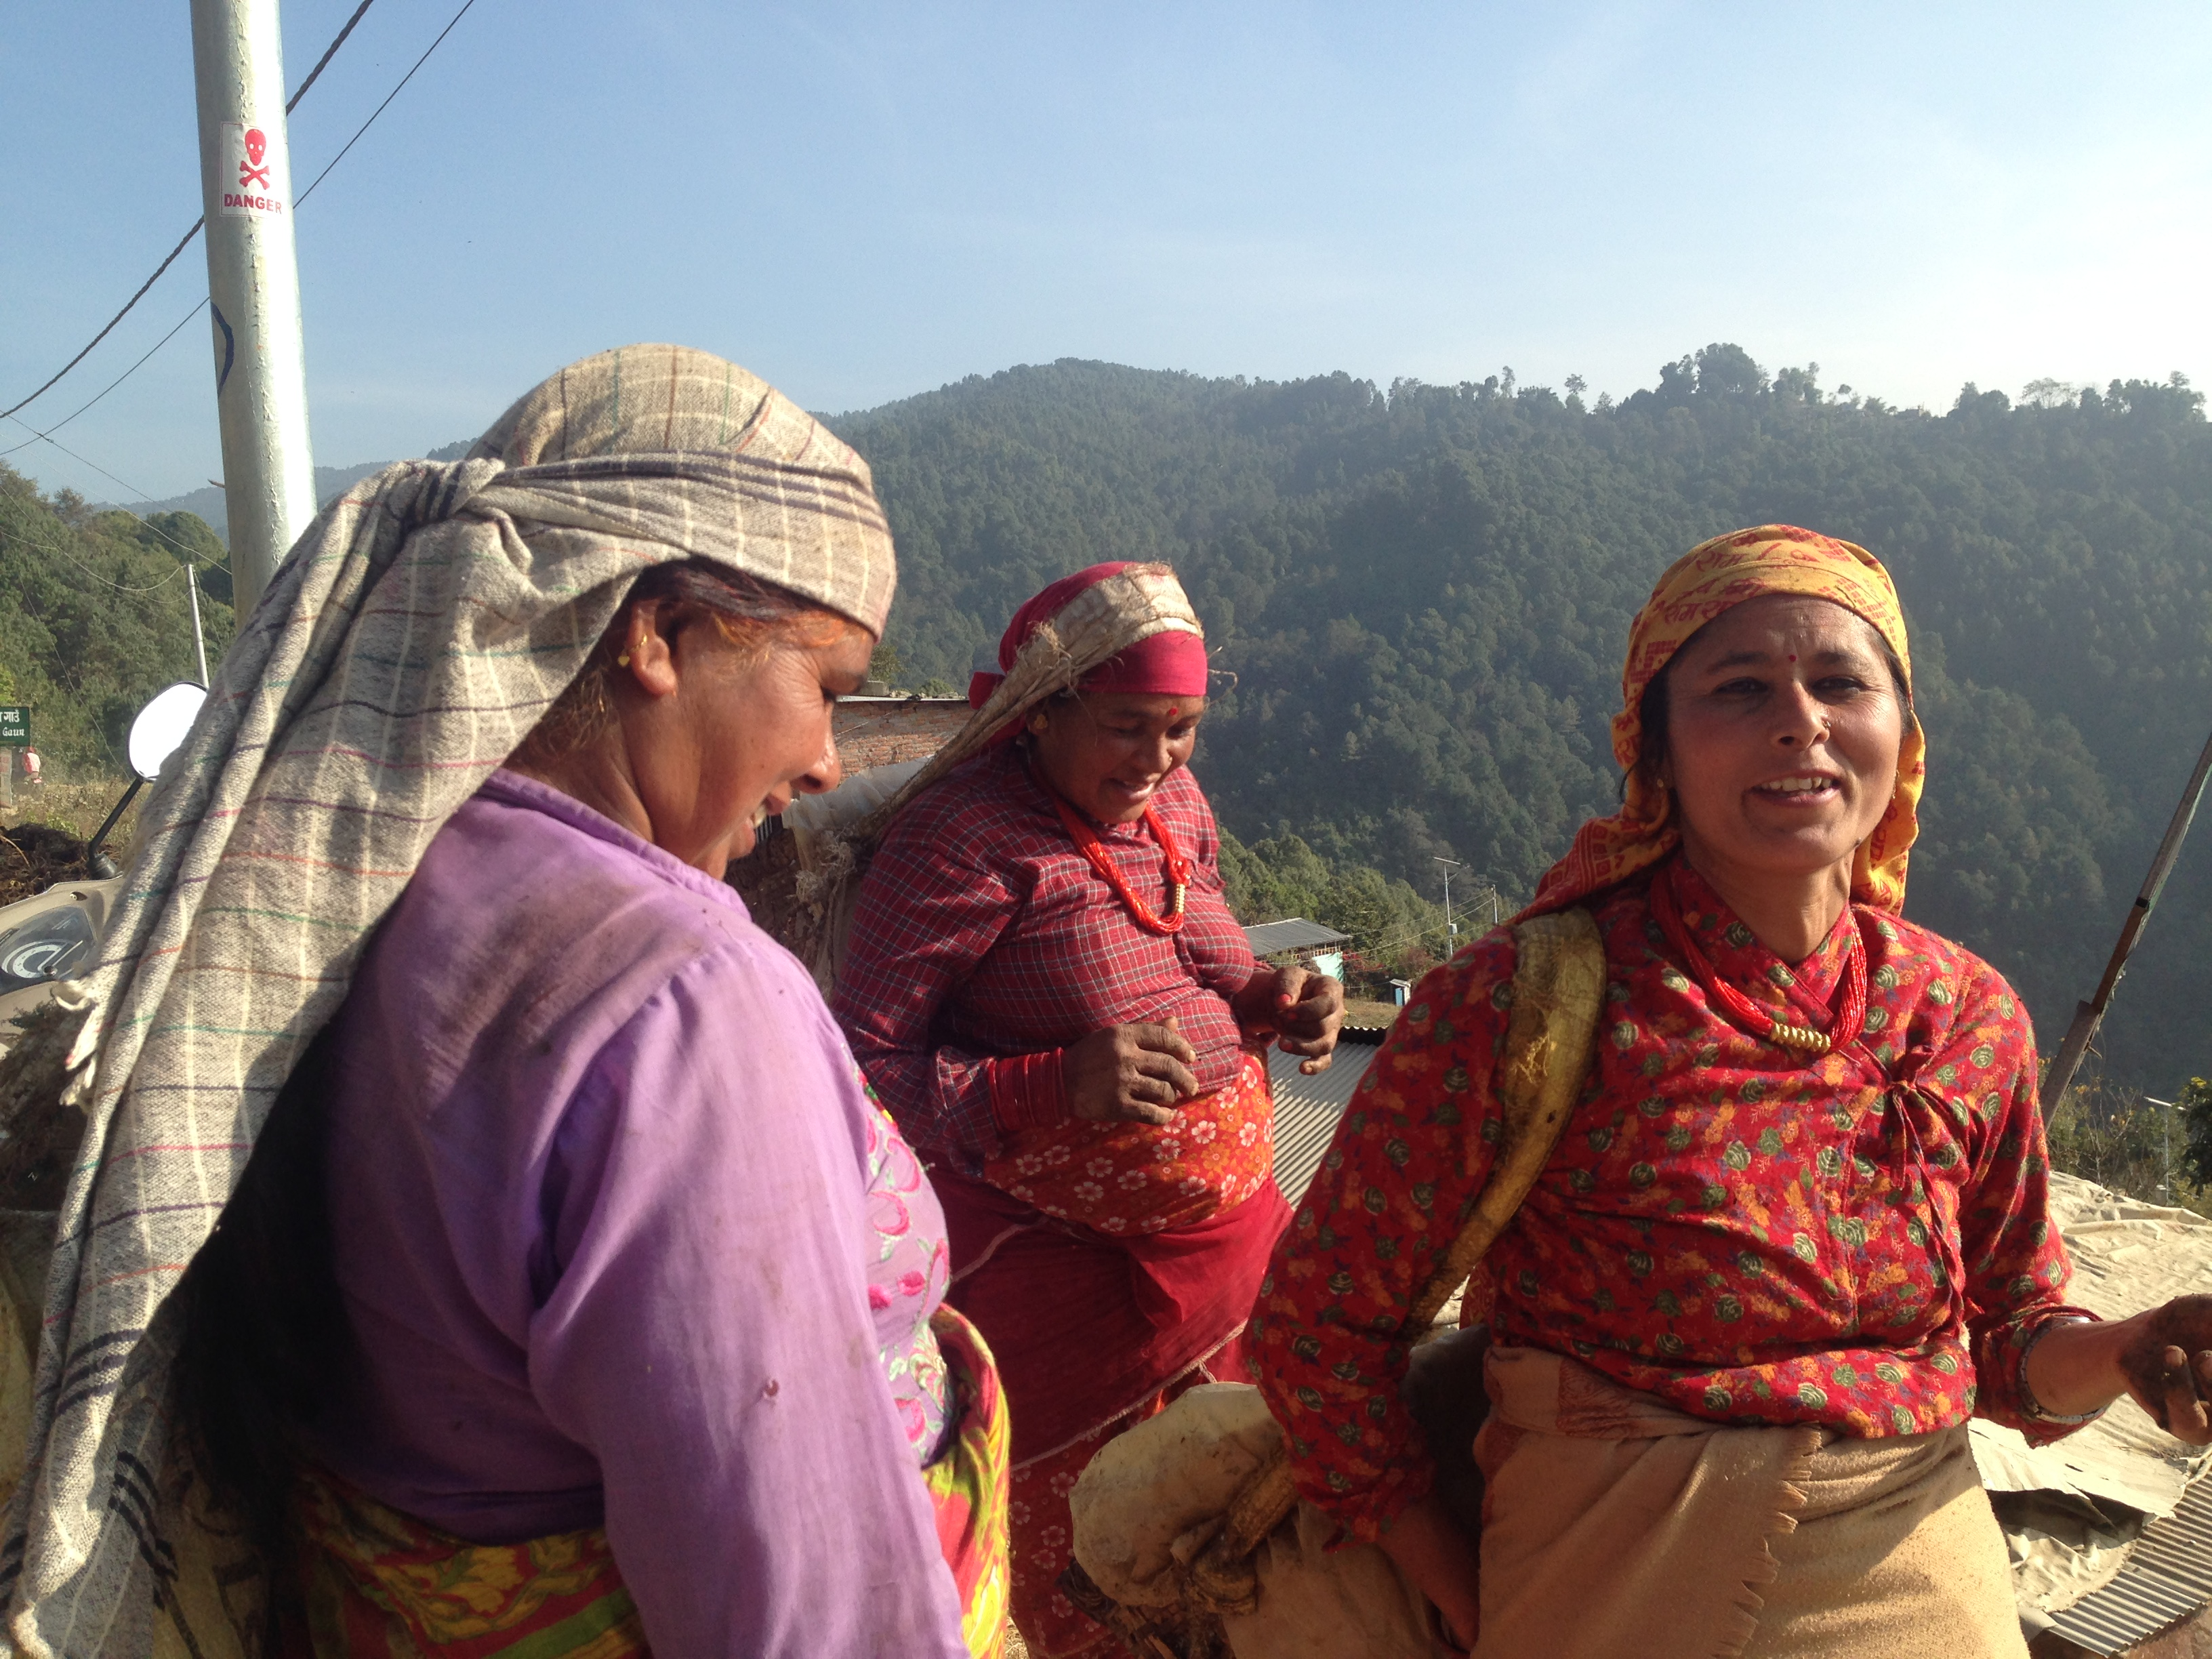 Nagarkot Community Homestay: When 'Excuse me' means more than just getting out of the way!